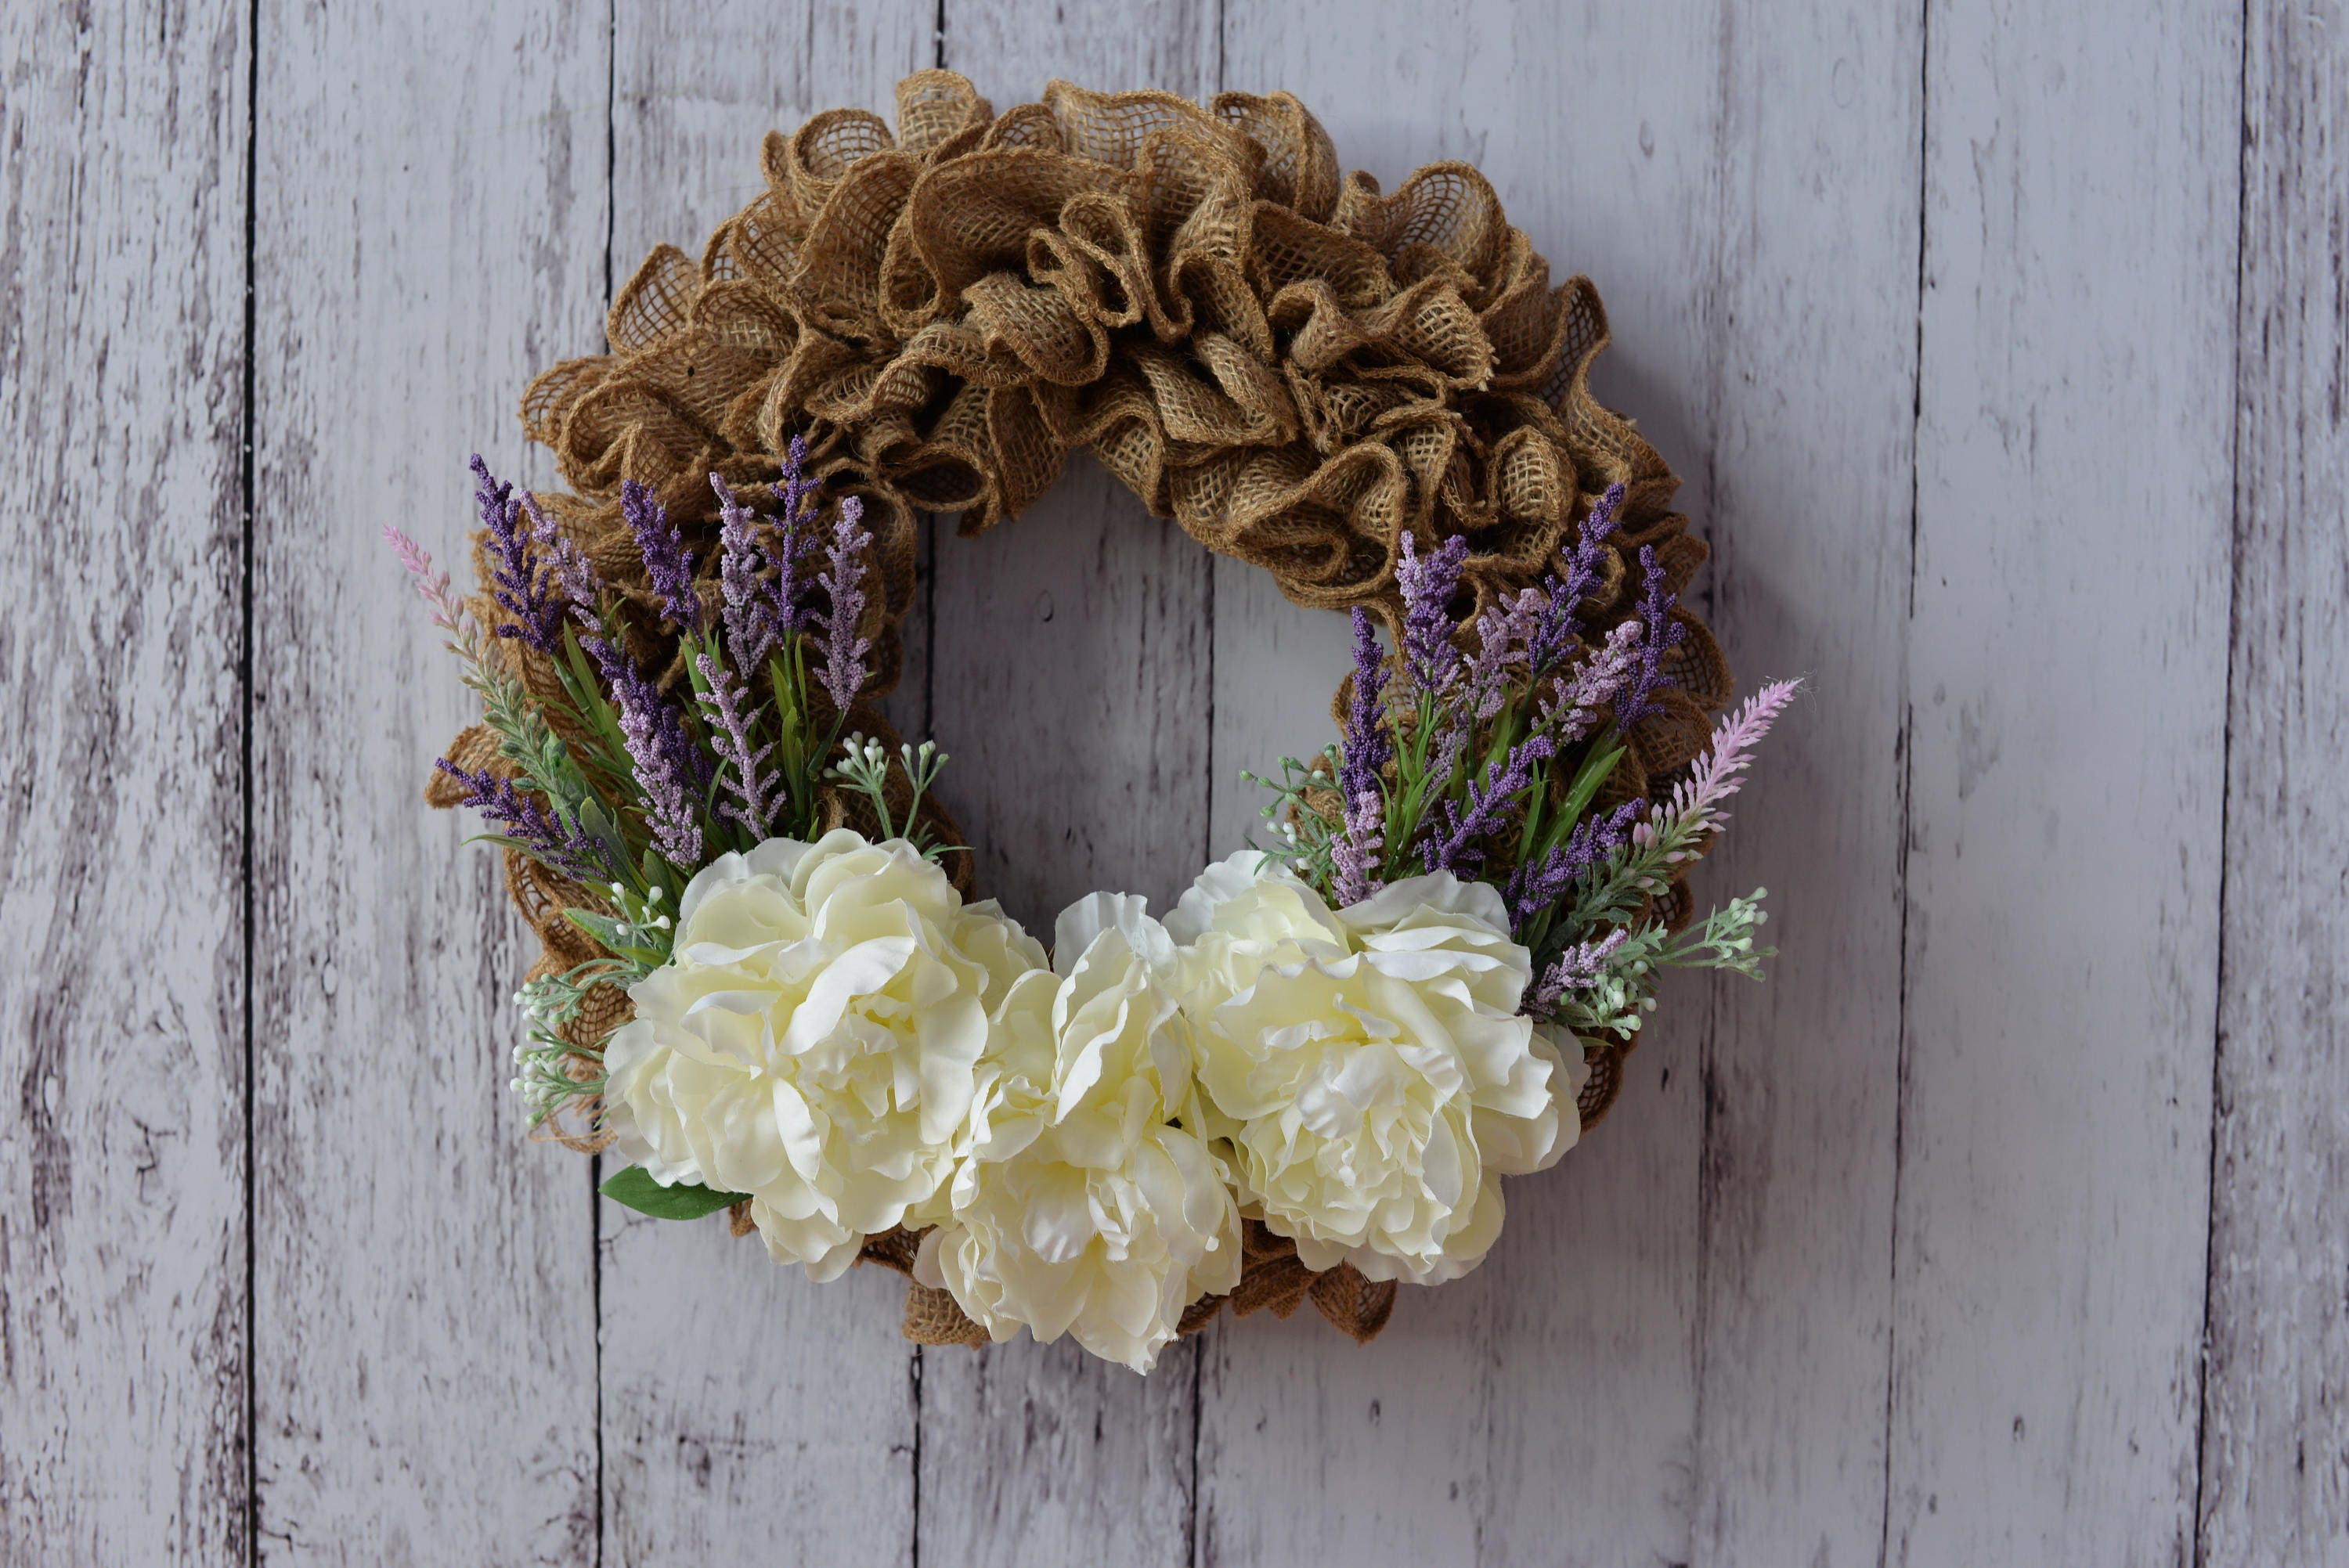 Burlap Wreath With Lavender And White Flowers Etsy